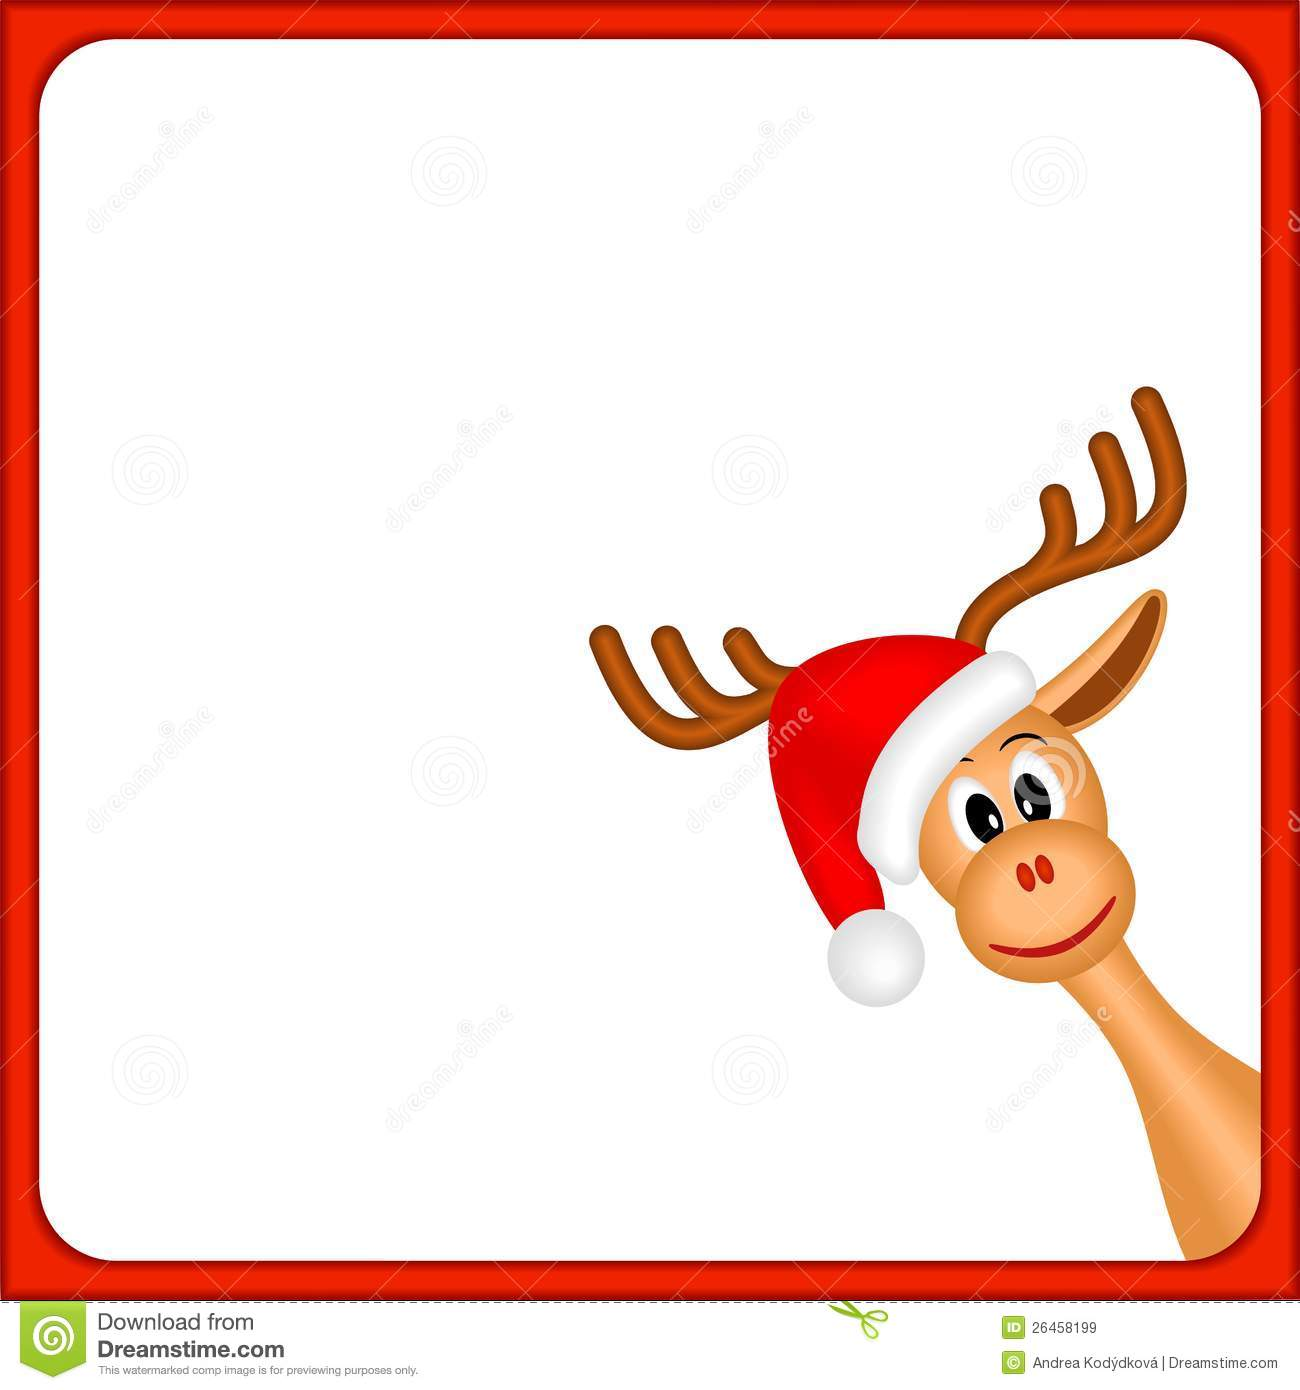 Christmas Reindeer In Empty Frame With Red Border And White Background